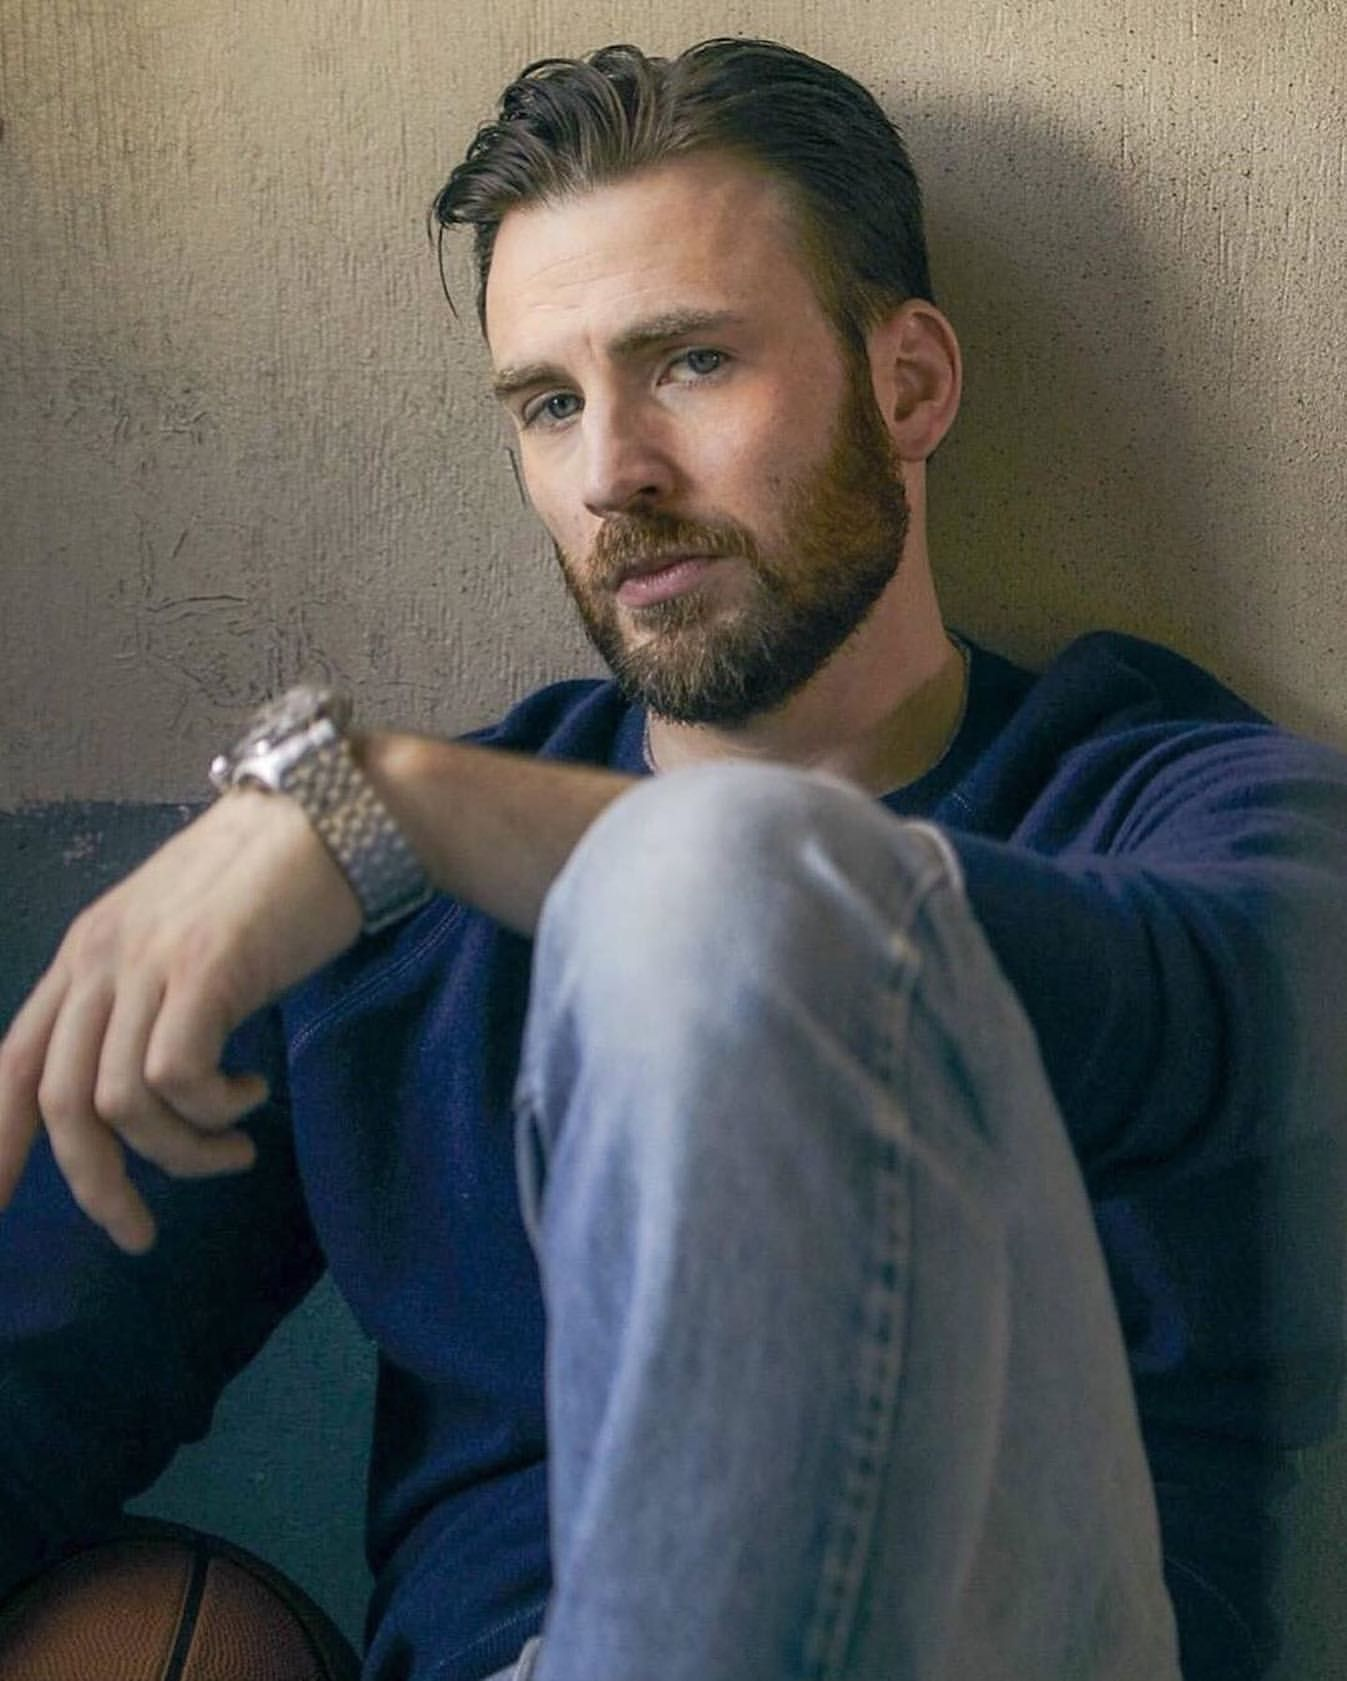 tbt New Outtake from Mens Journal Photoshoot .teamcevans is sharing  instagram posts and you can see pictures … | Chris evans, Chris evans  beard, Christopher evans